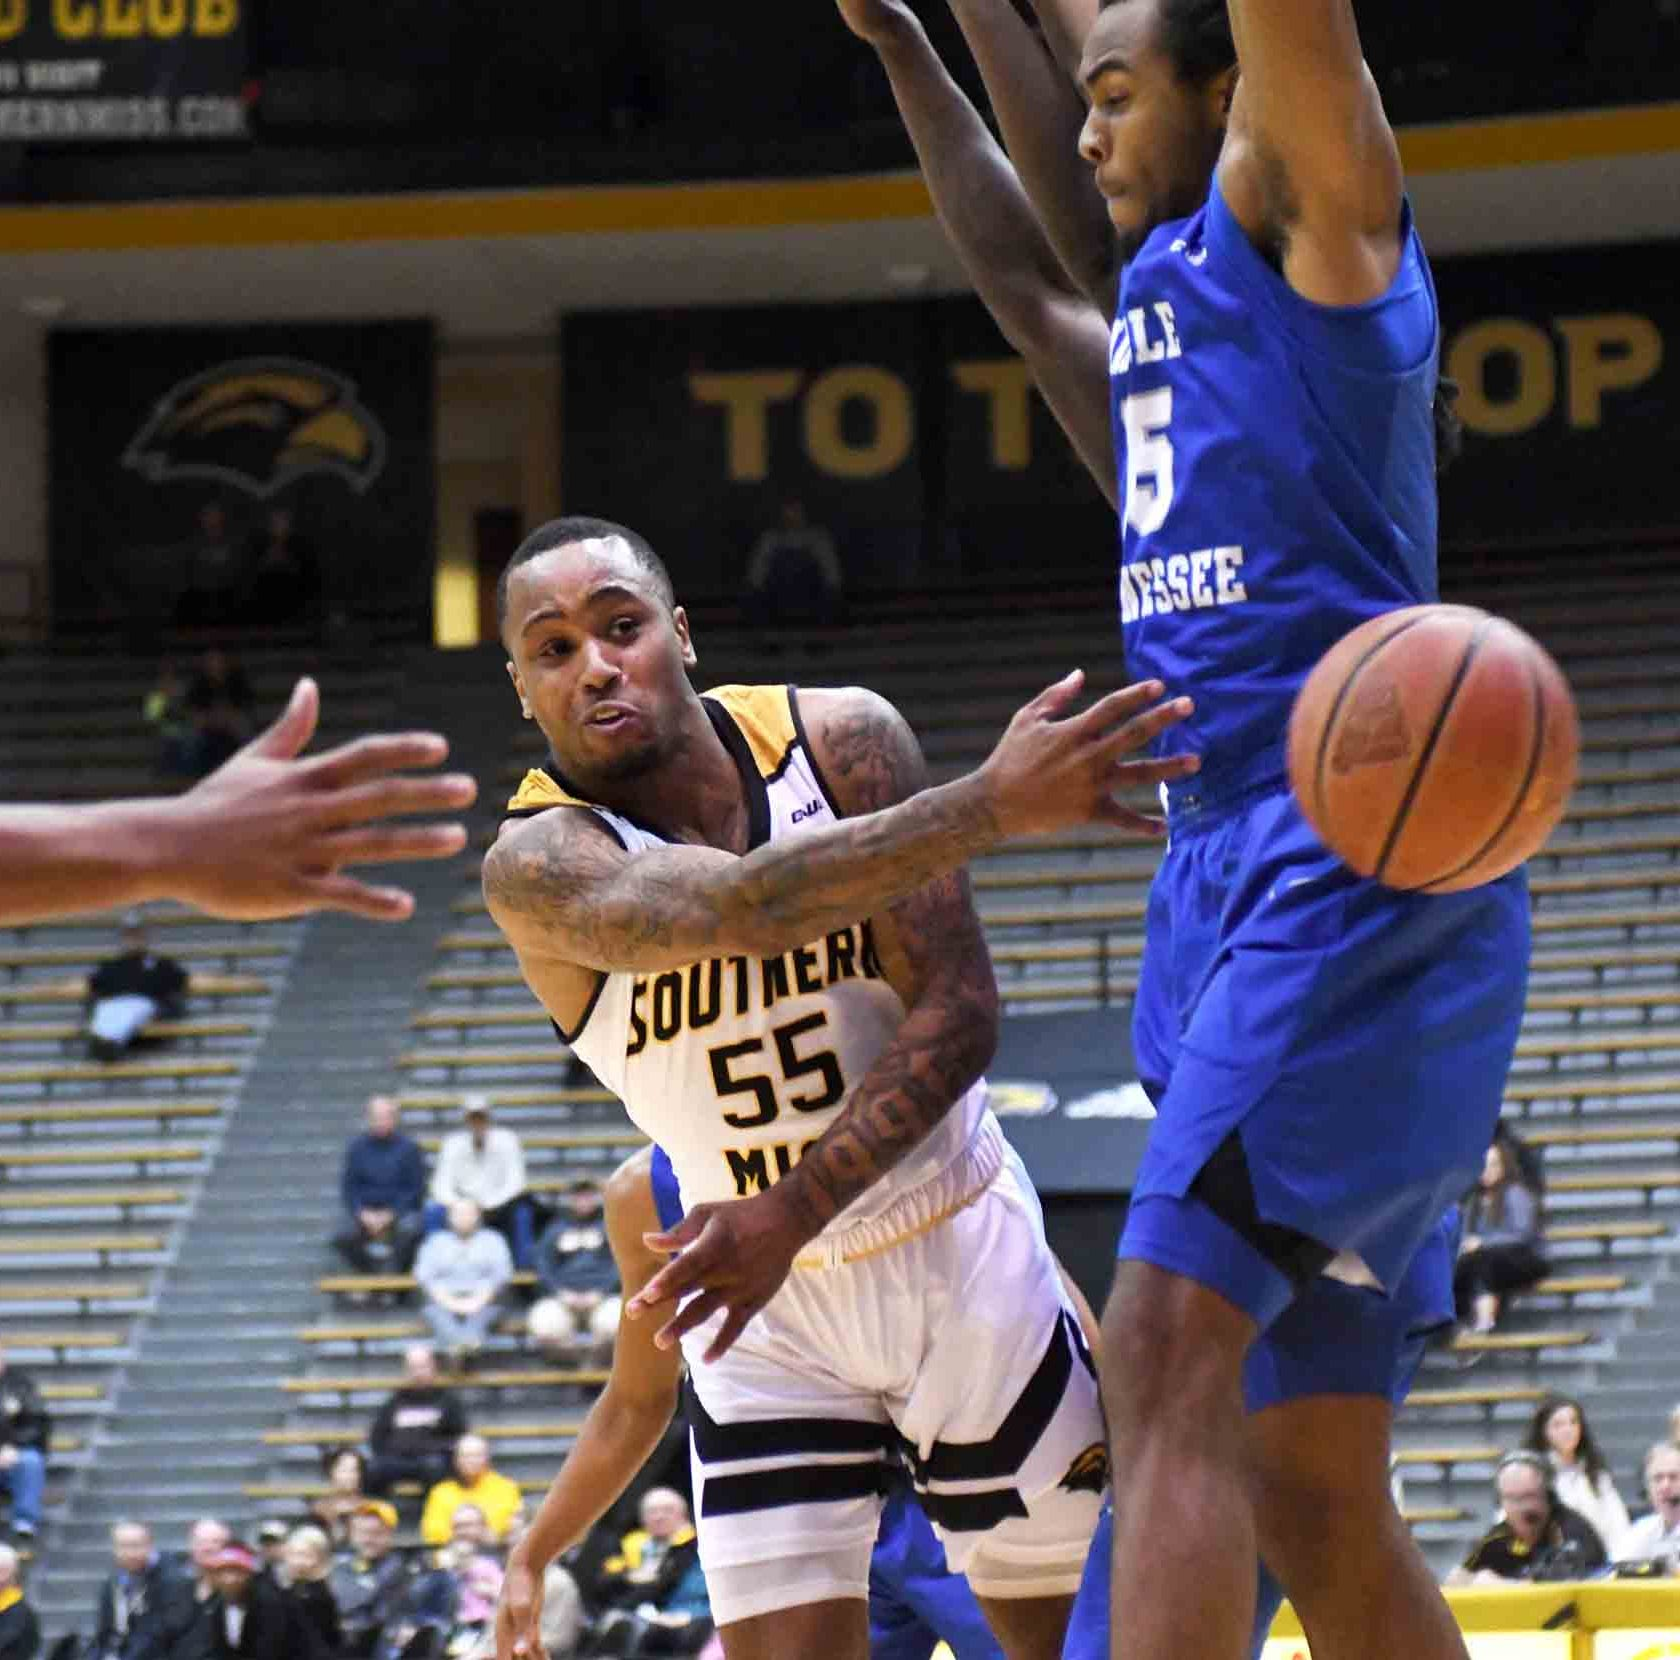 Golden Eagles' win streak snapped with 76-62 loss at Old Dominion